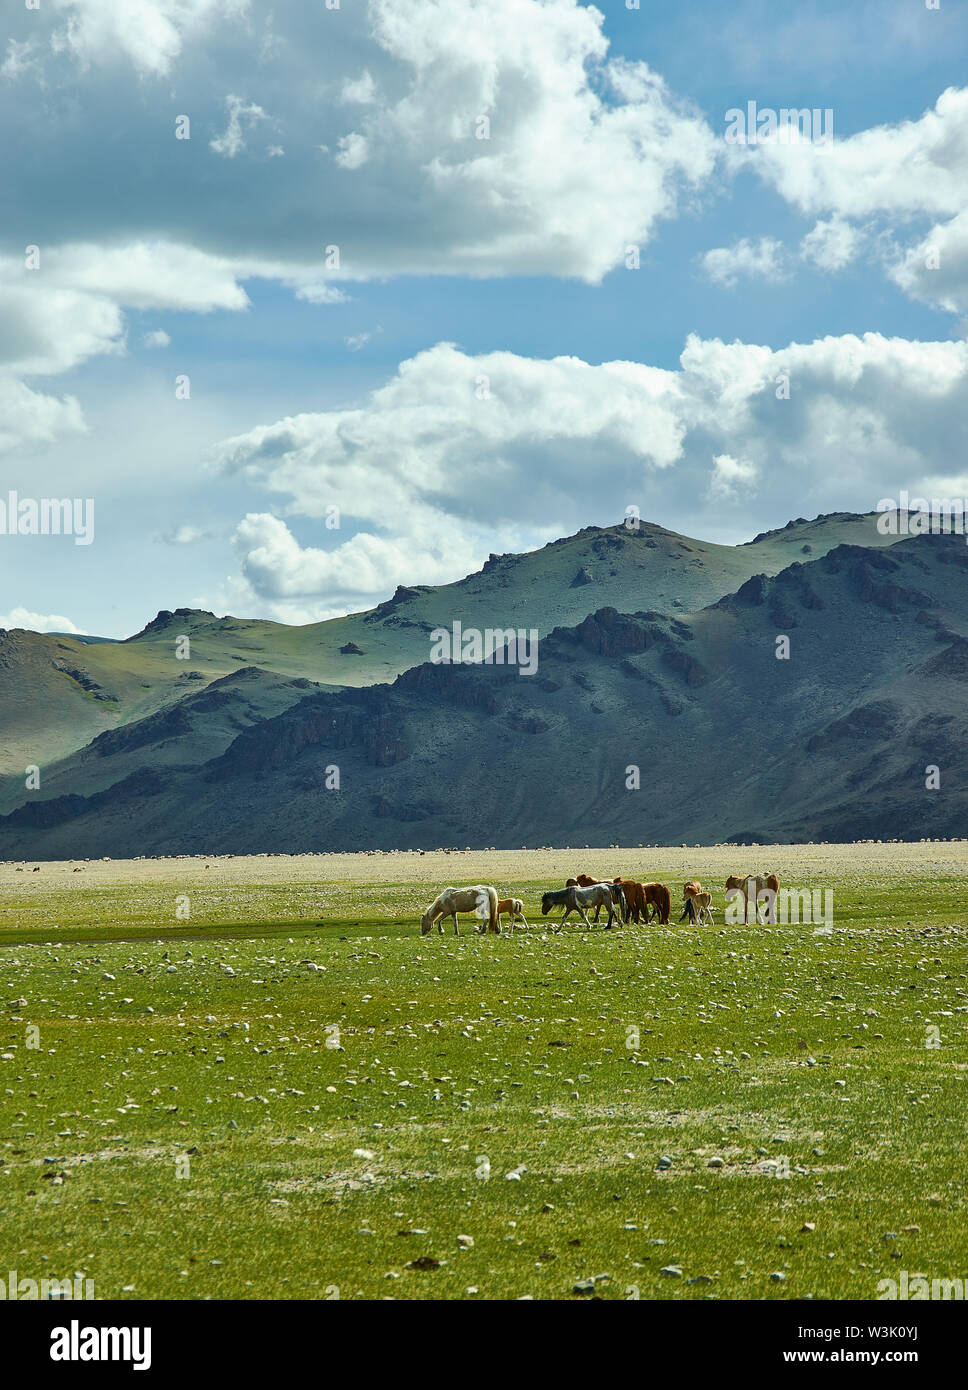 Mongolian Altai.  Scenic valley on the background of the snowcapped mountains.Herd graze in the camp - Stock Image